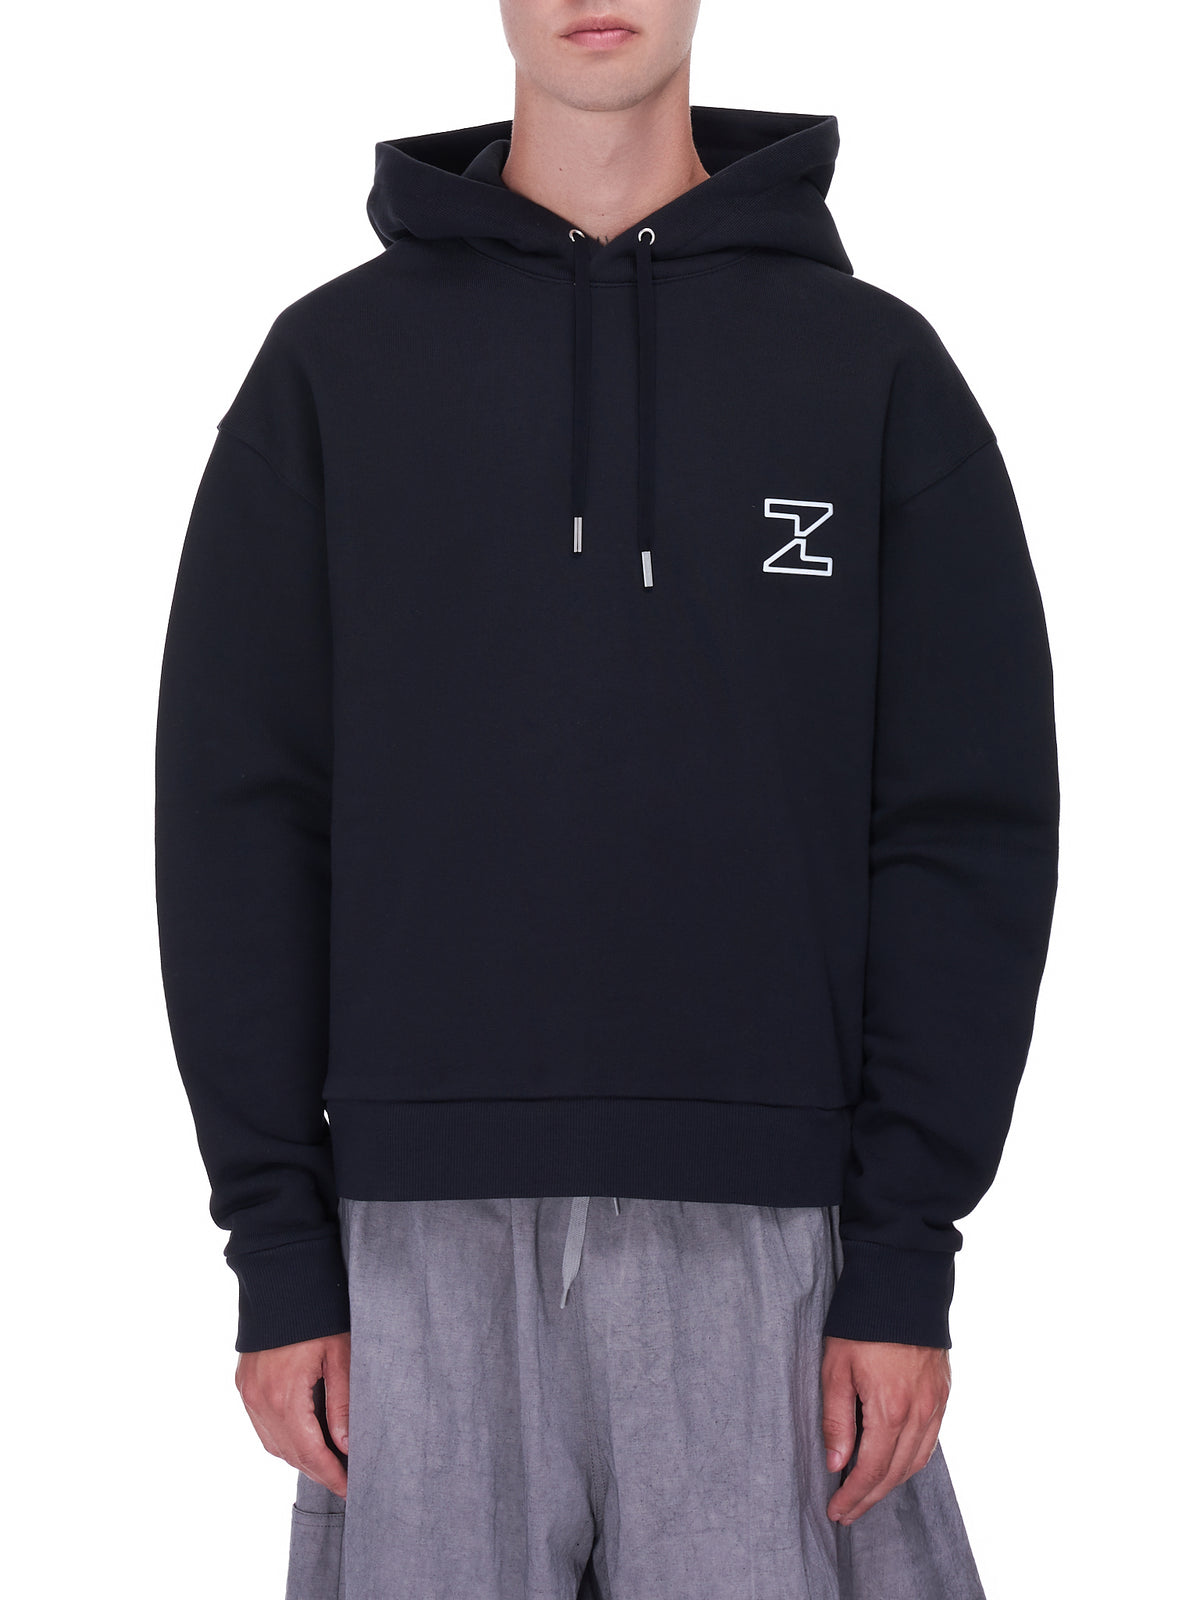 The Zed Hoodie (LEOUSW01-THE-ZED-BLACK)